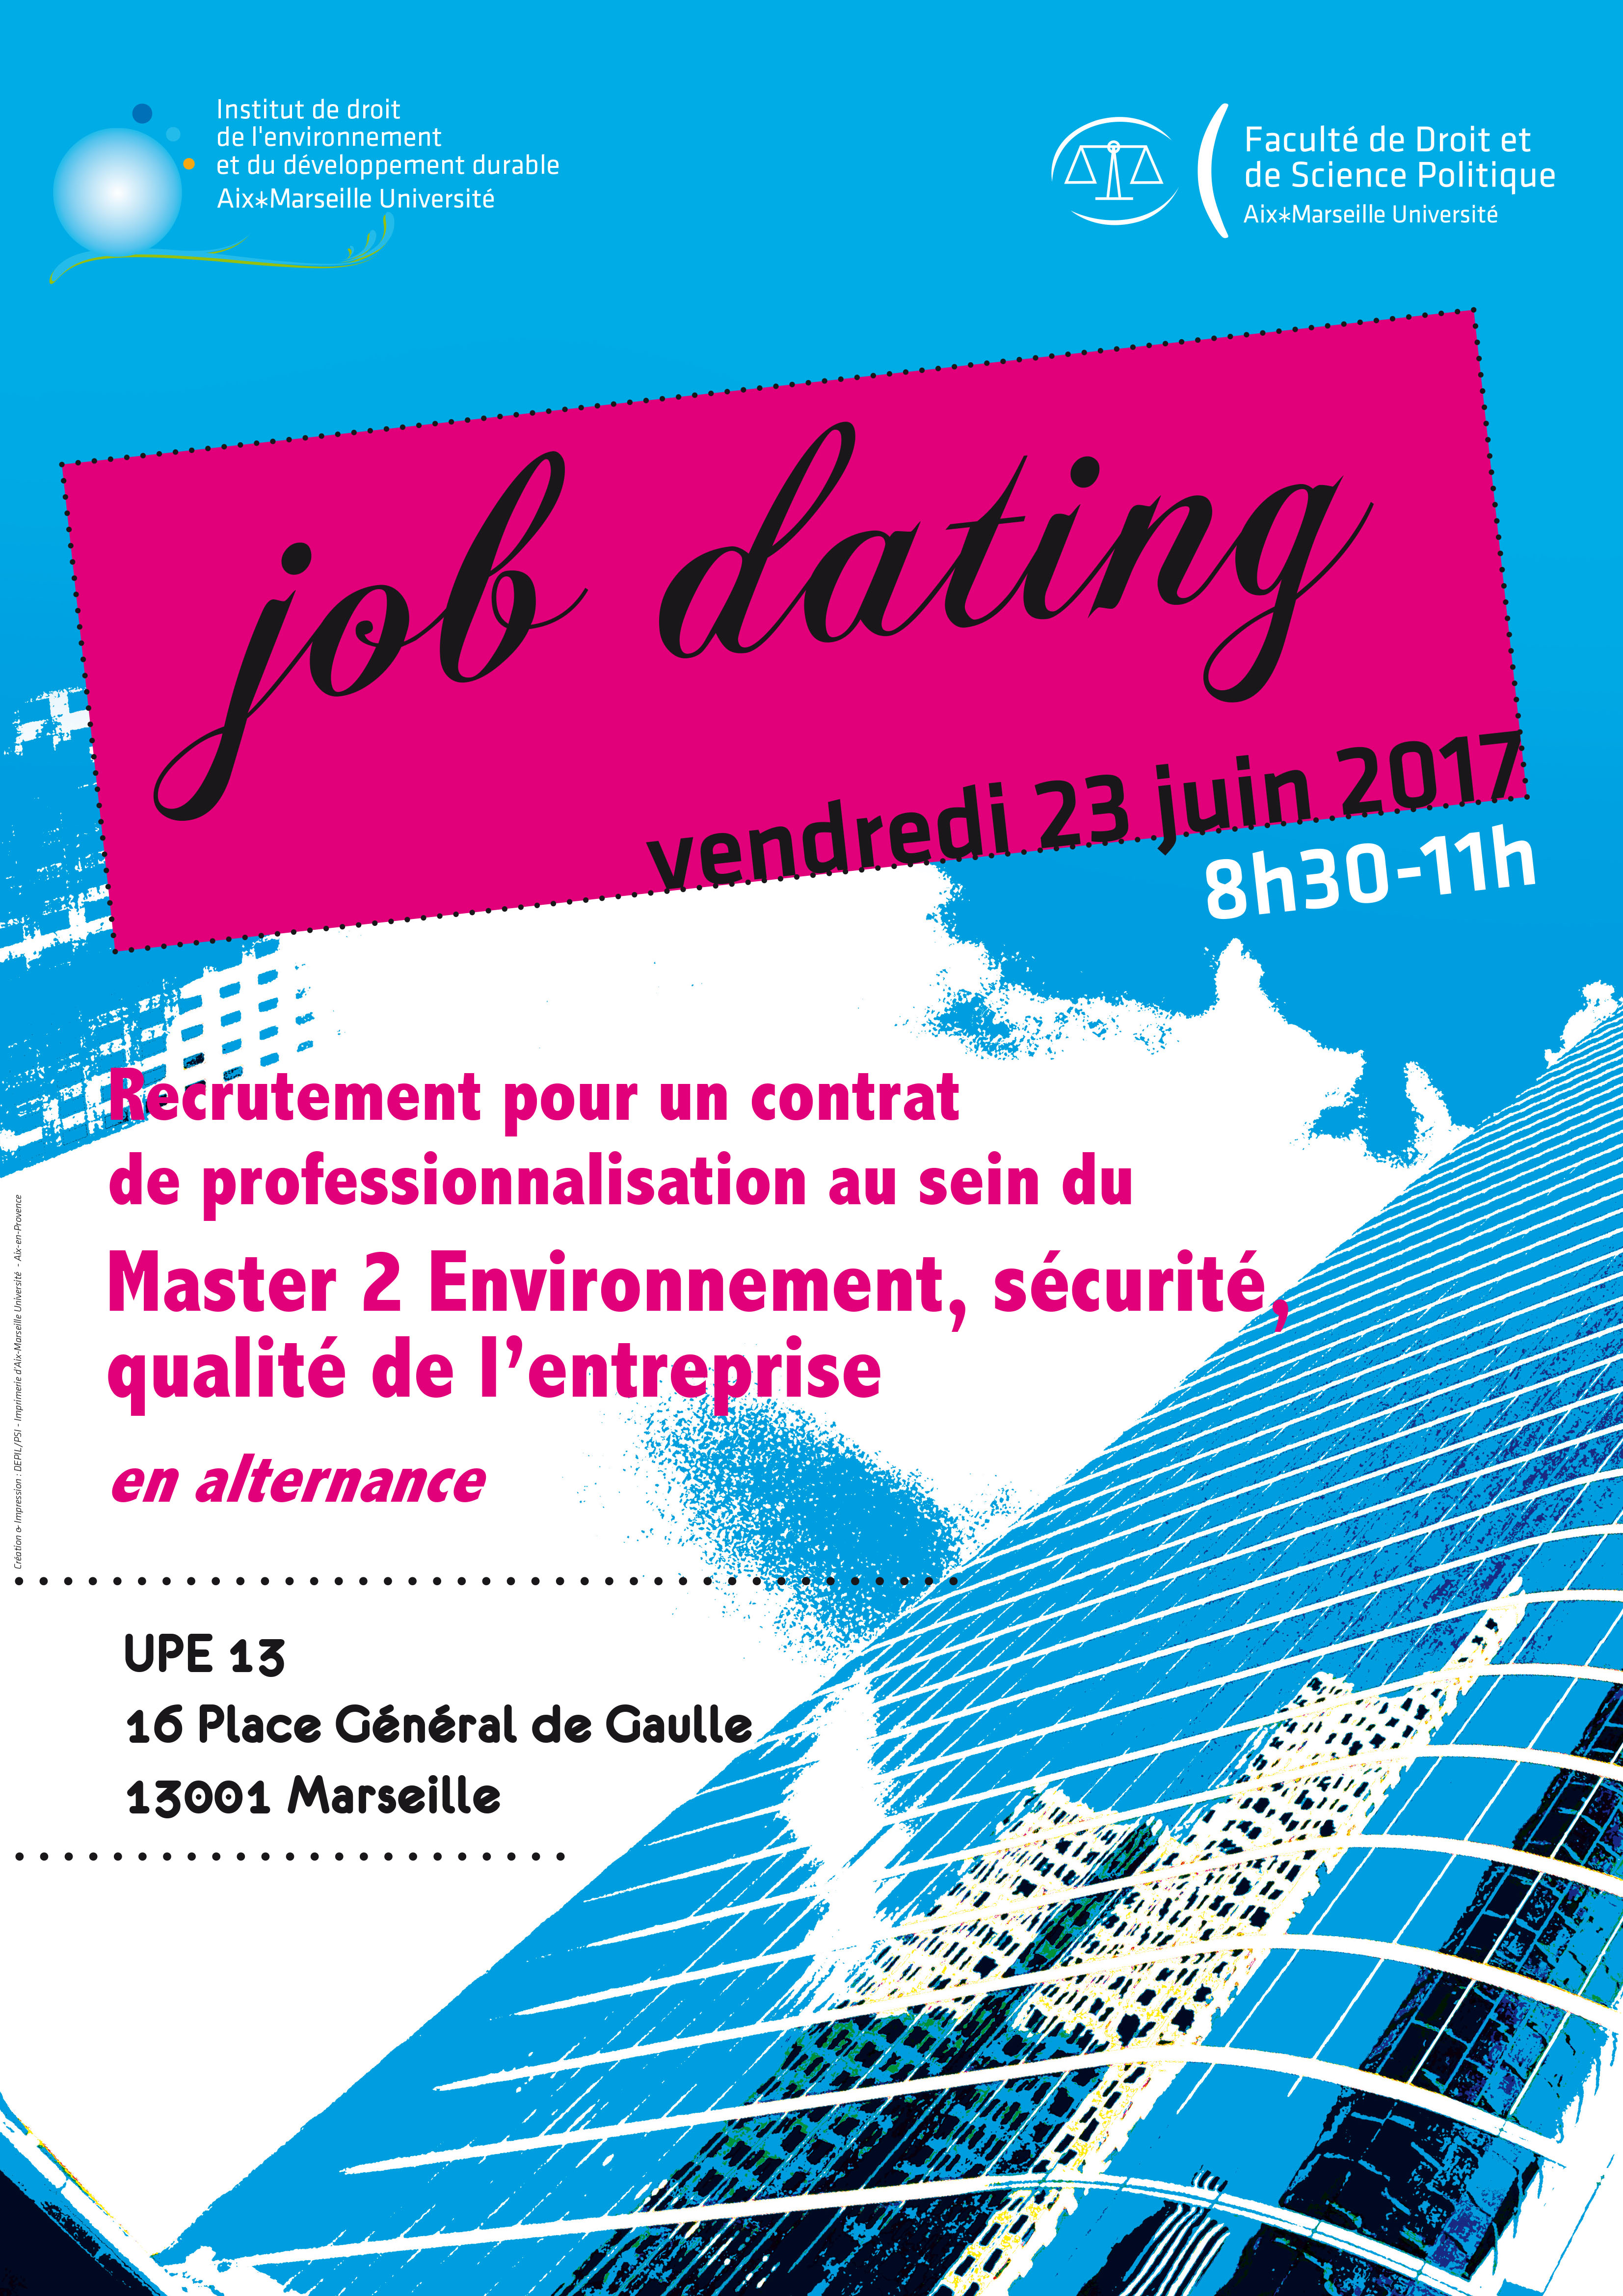 Job dating alternance marseille